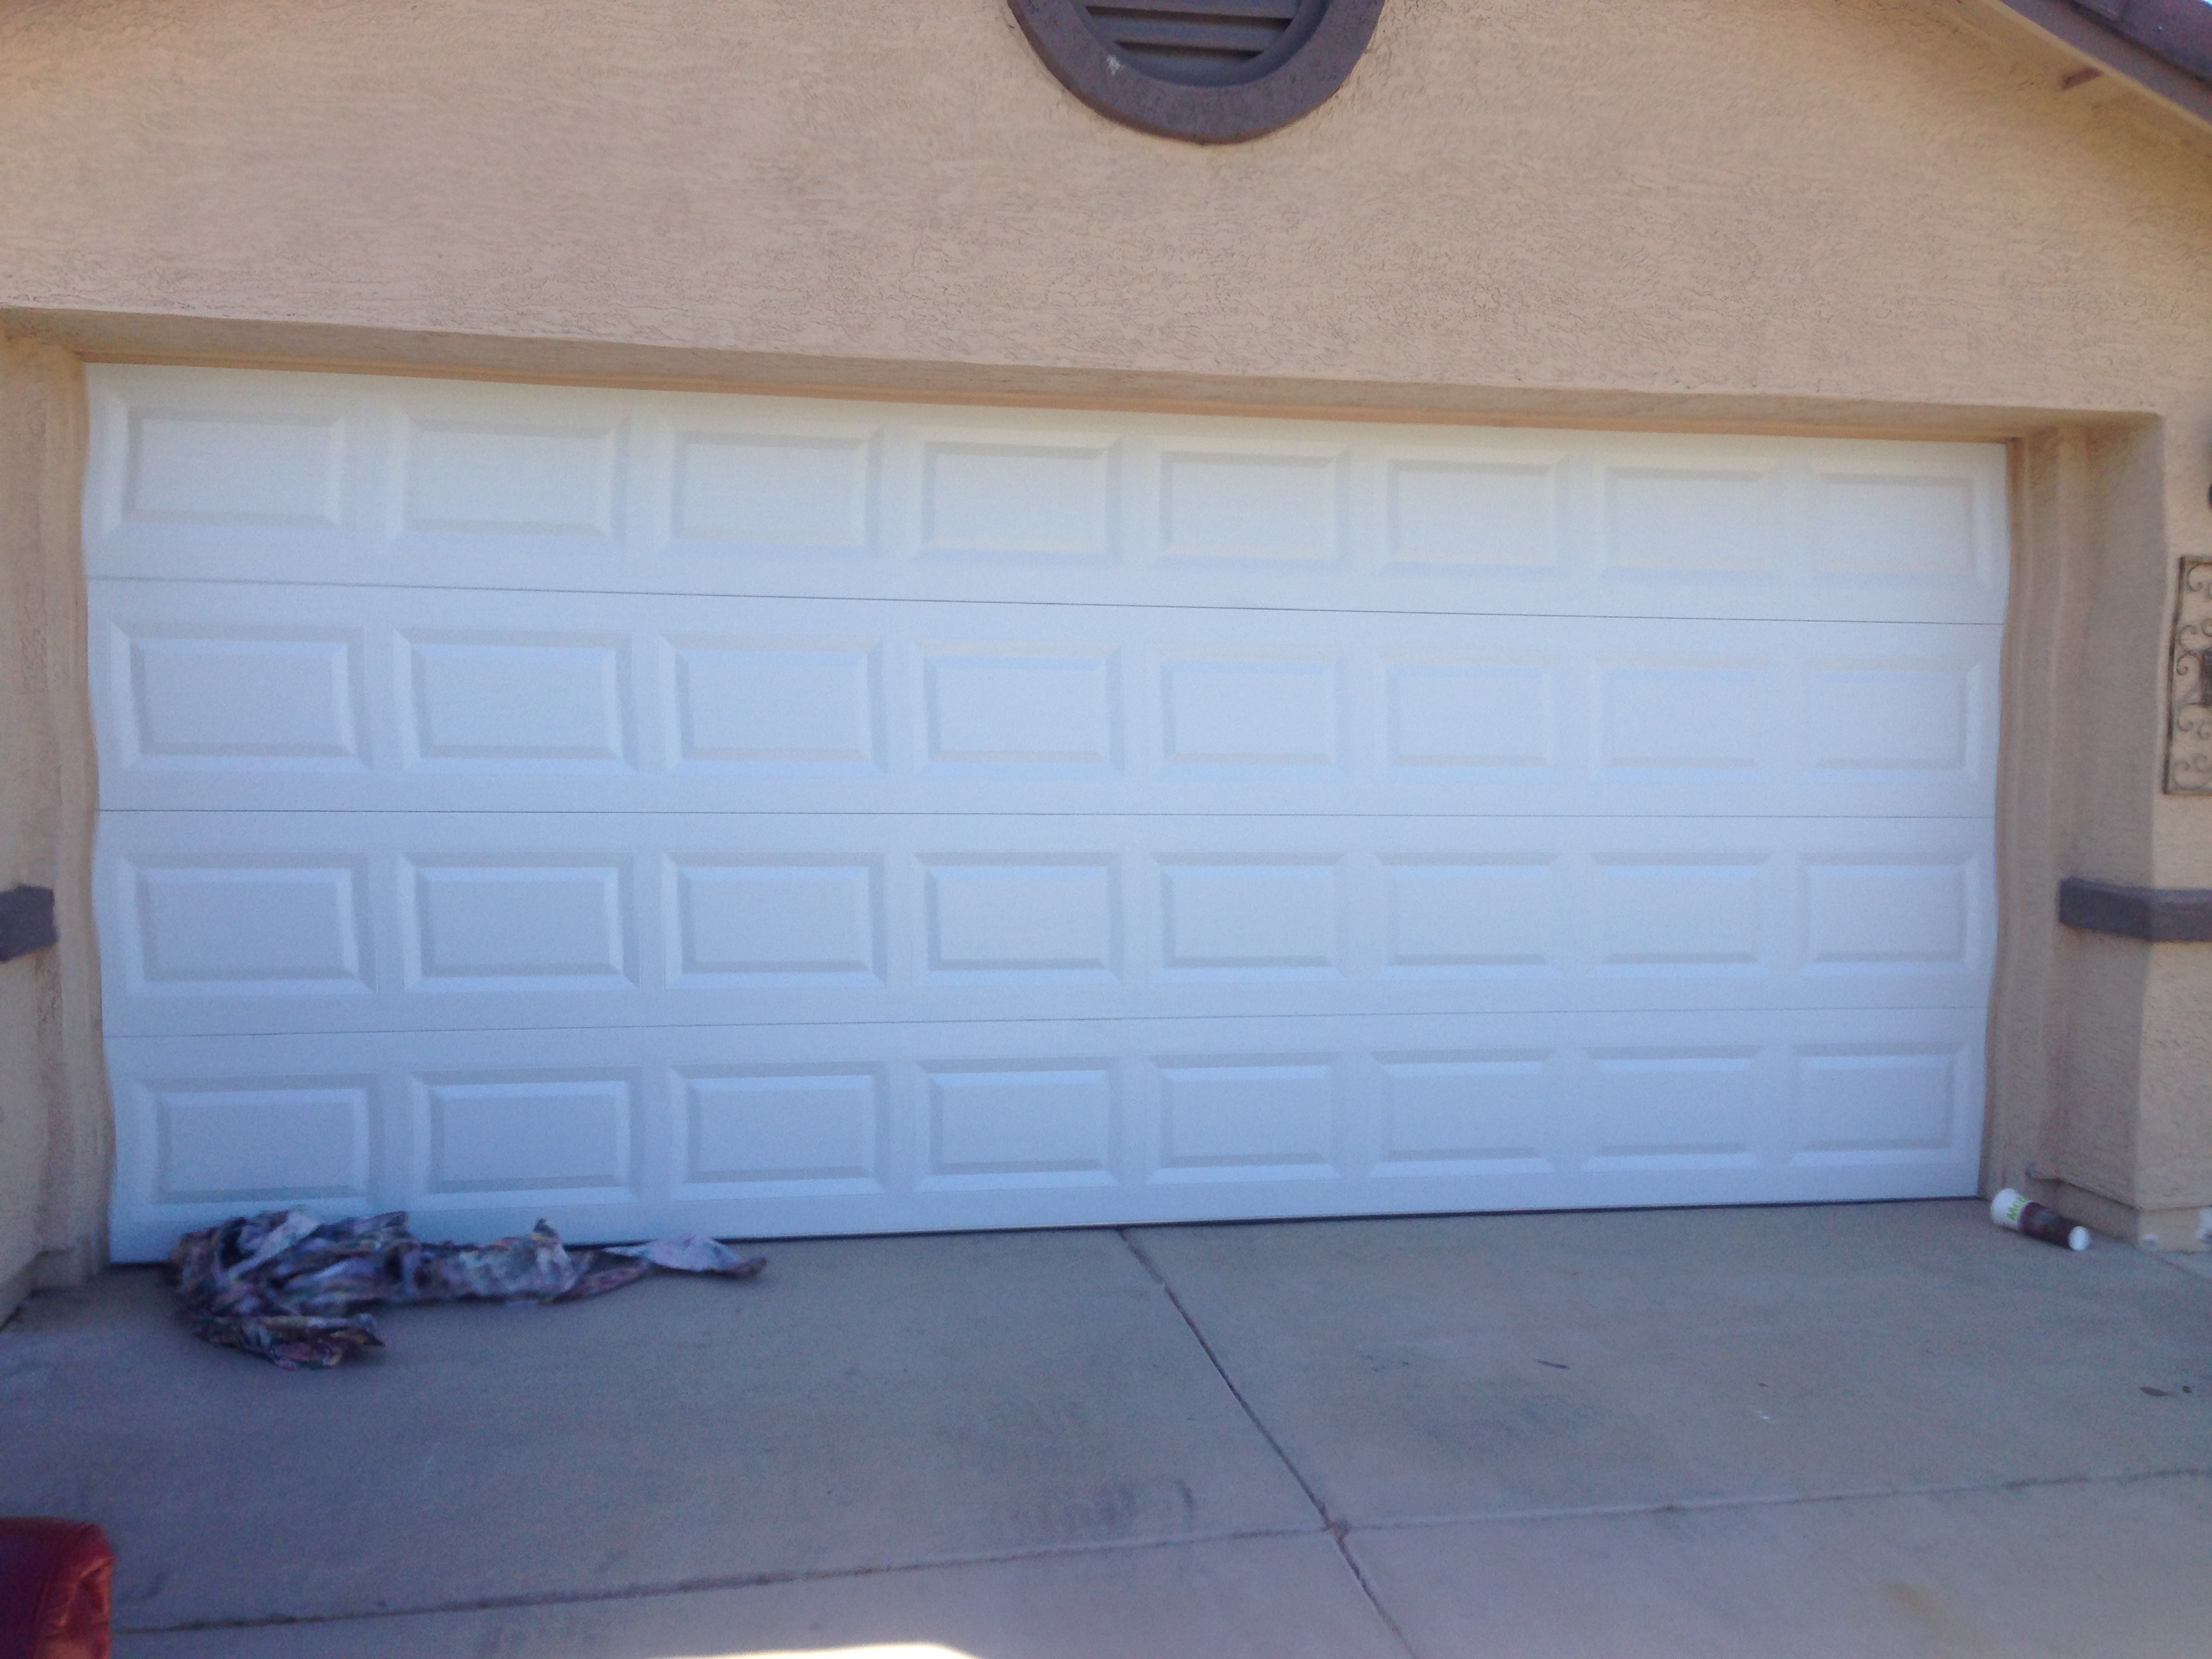 us garage city cal vista door of grove so doors overhead installation contact before